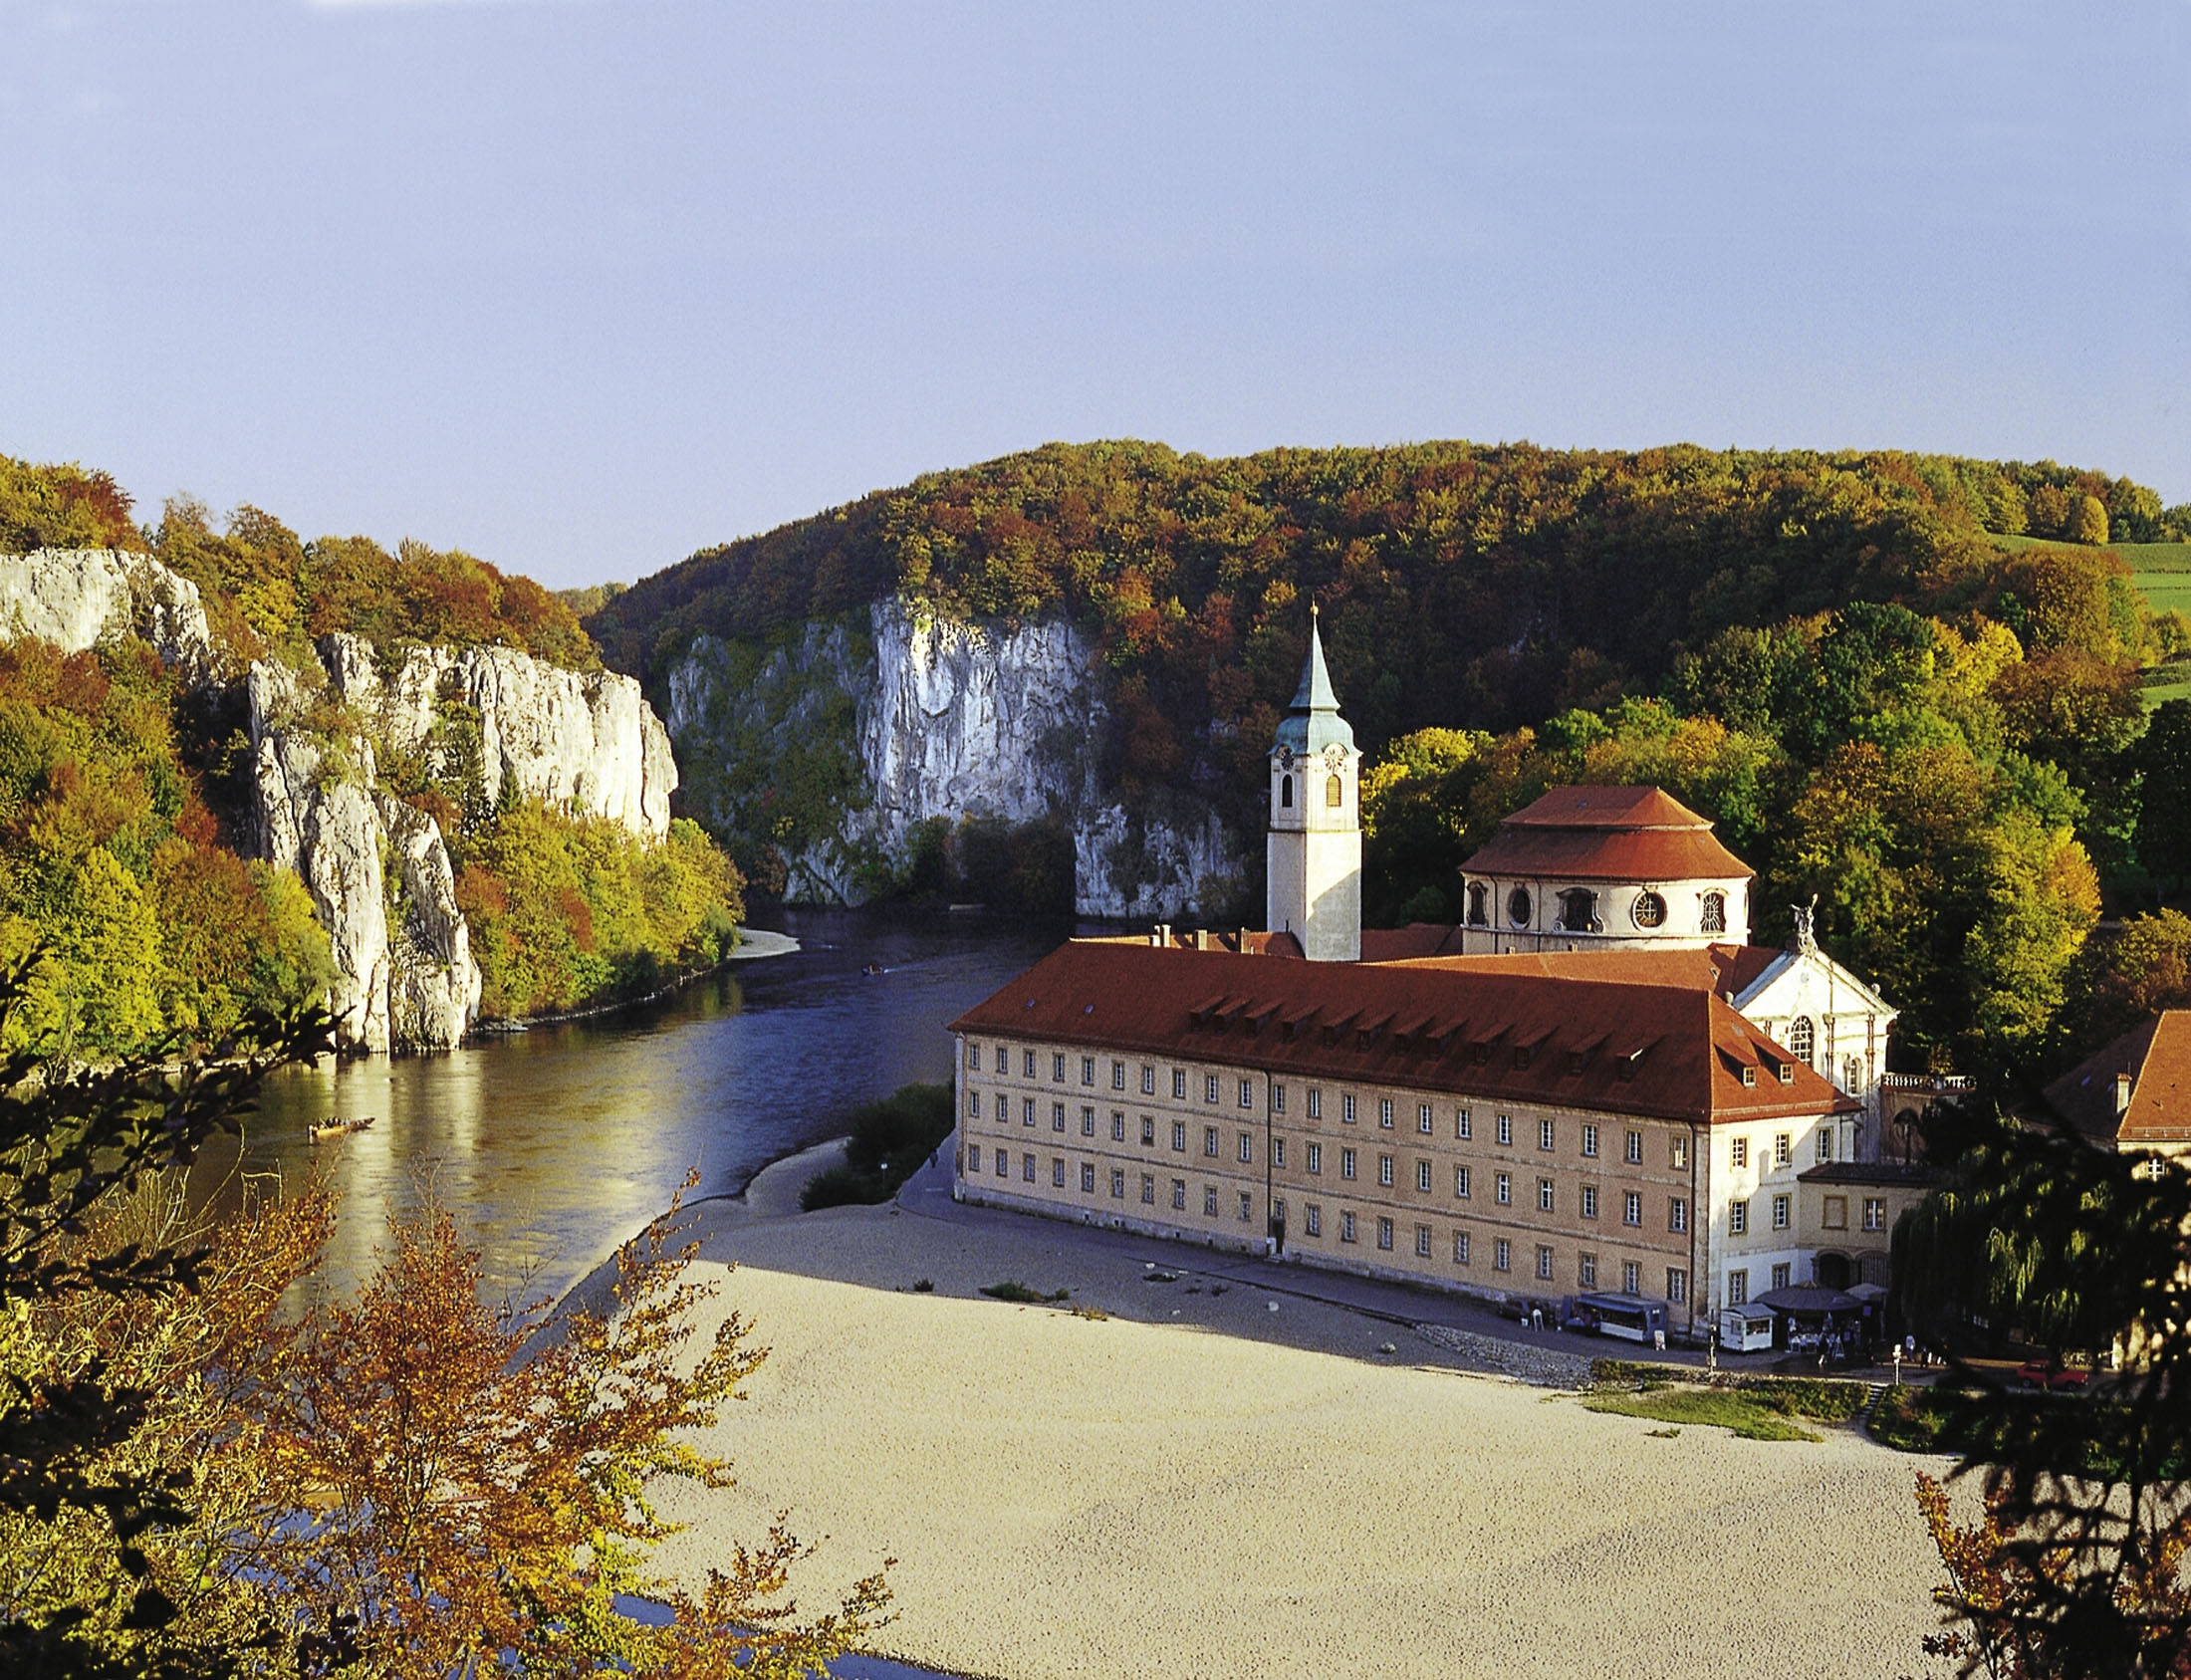 The Weltenburg Abbey is located at the romantic Danube Gorge.